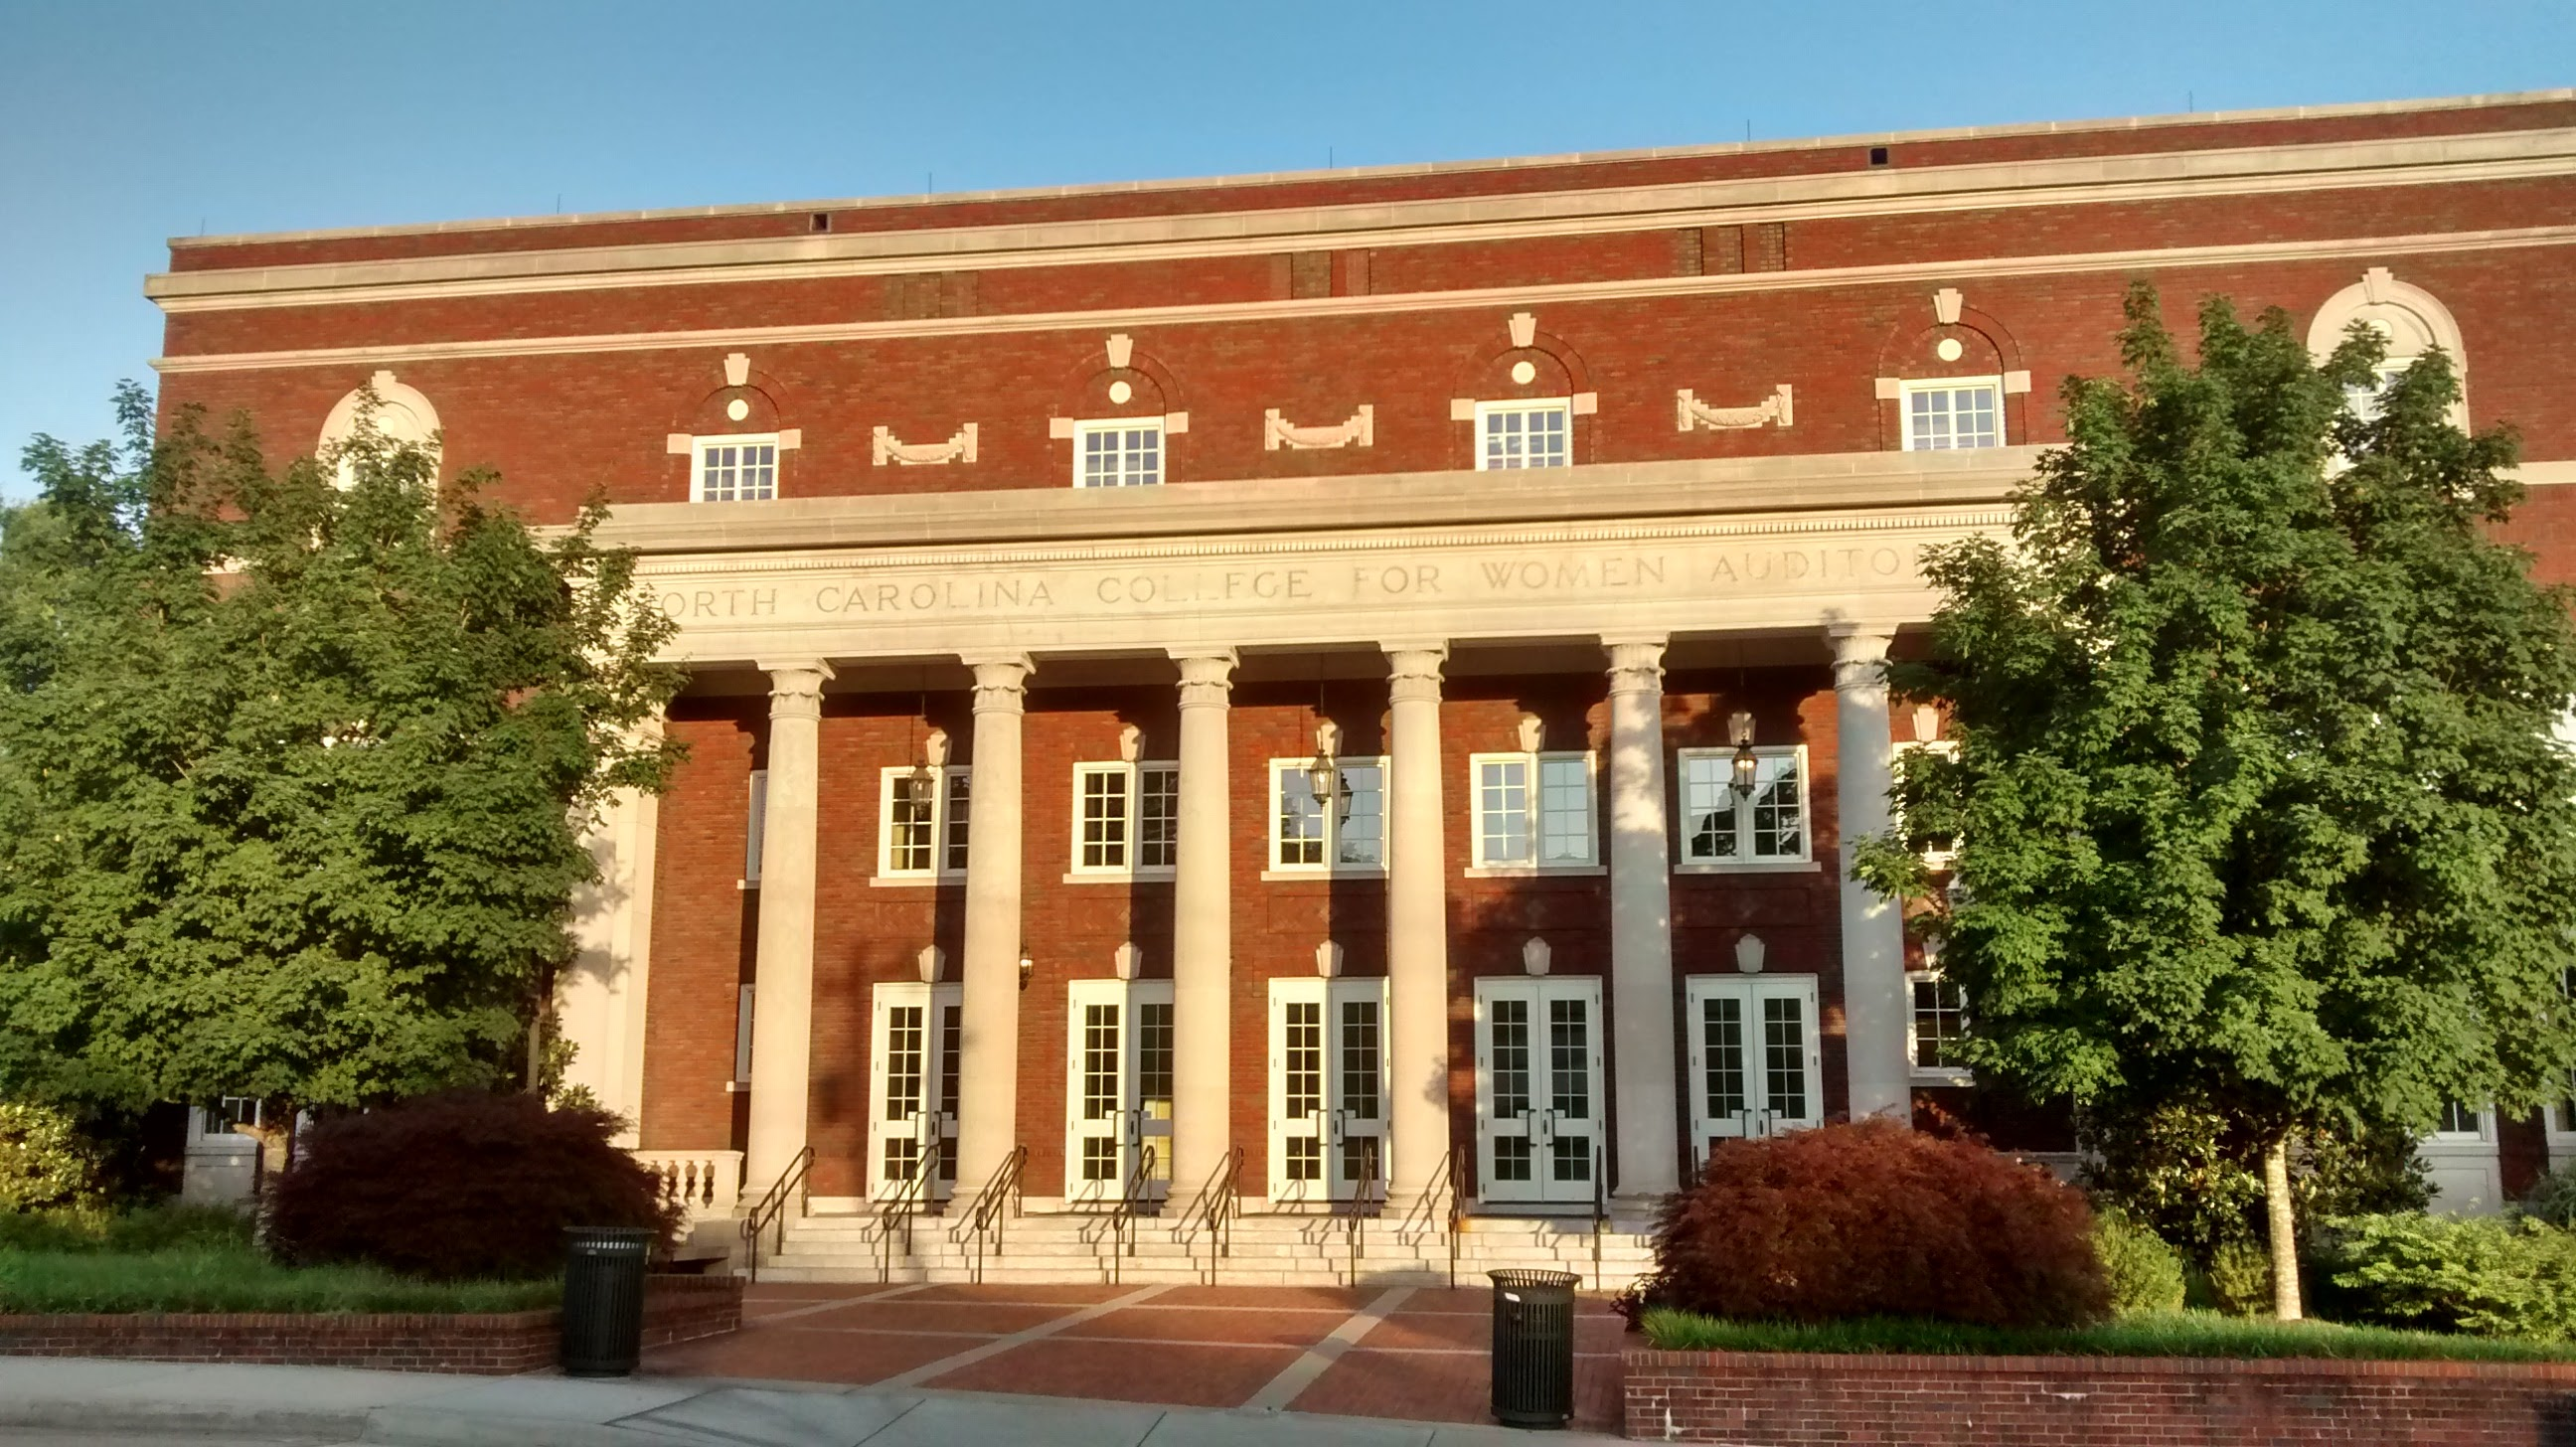 "Where the former Aycock Auditorium sign was, the original name appears: ""North Carolina College for Women Auditorium"""